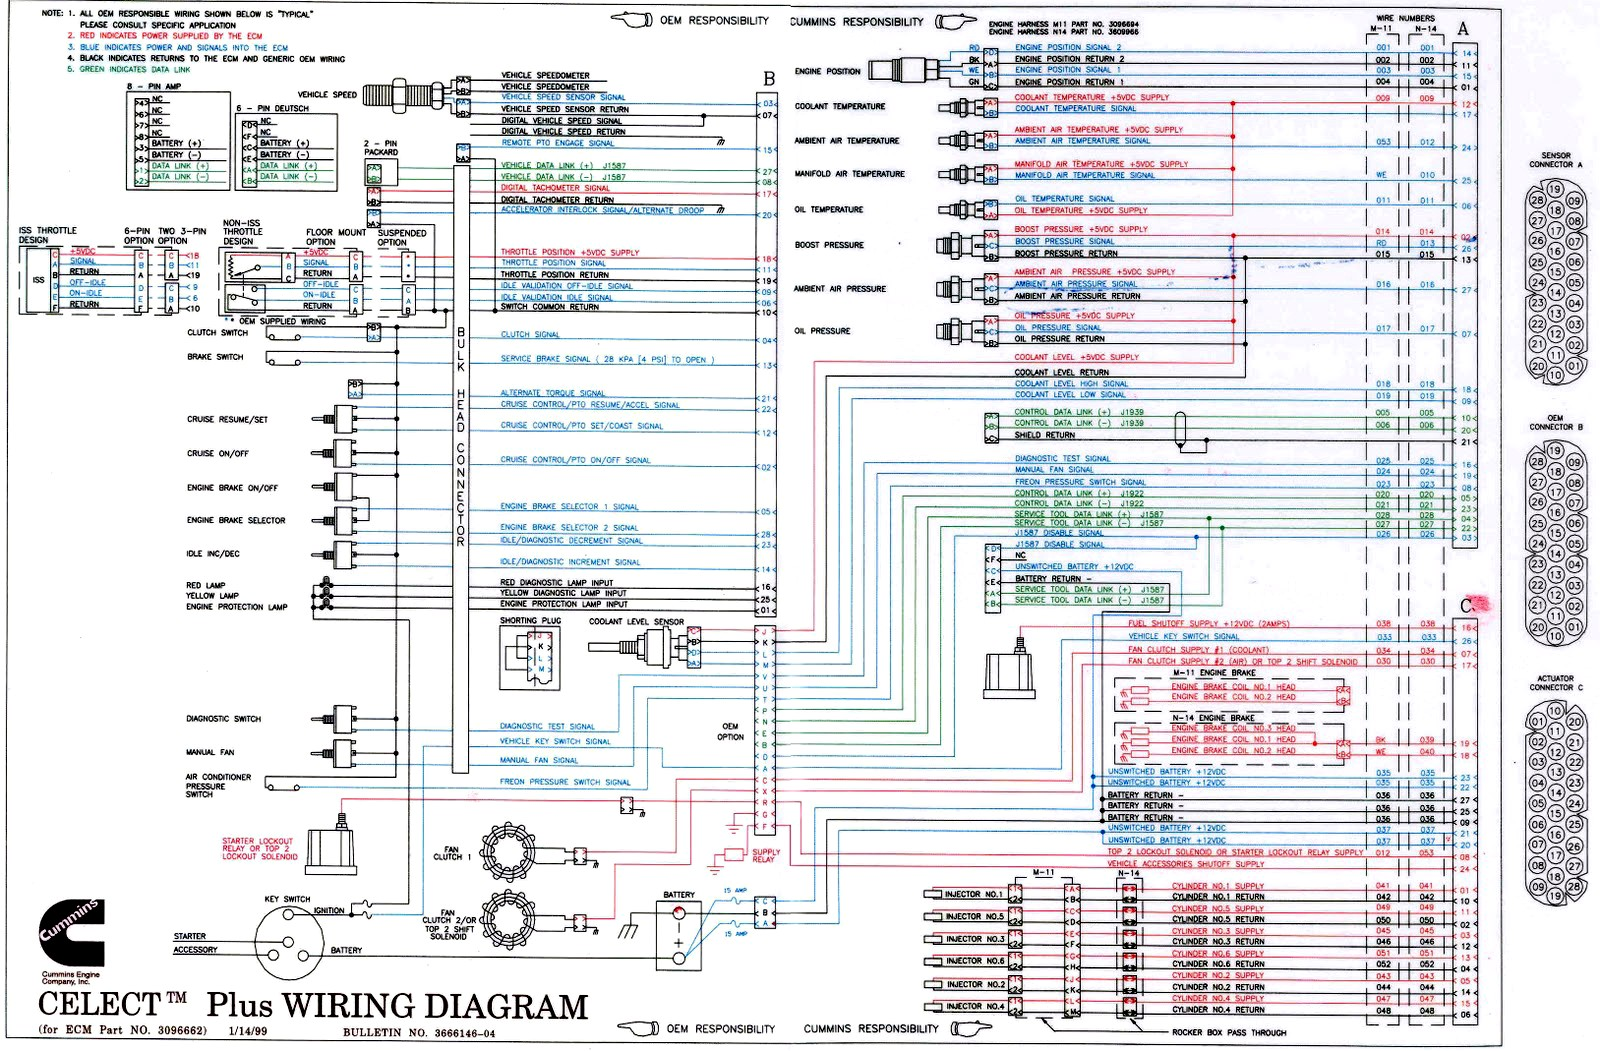 Celect+Plus+Wiring+Diagram+Cummins celect plus wiring diagram cummins ~ servicio diesel americano n14 celect wiring diagram at mifinder.co